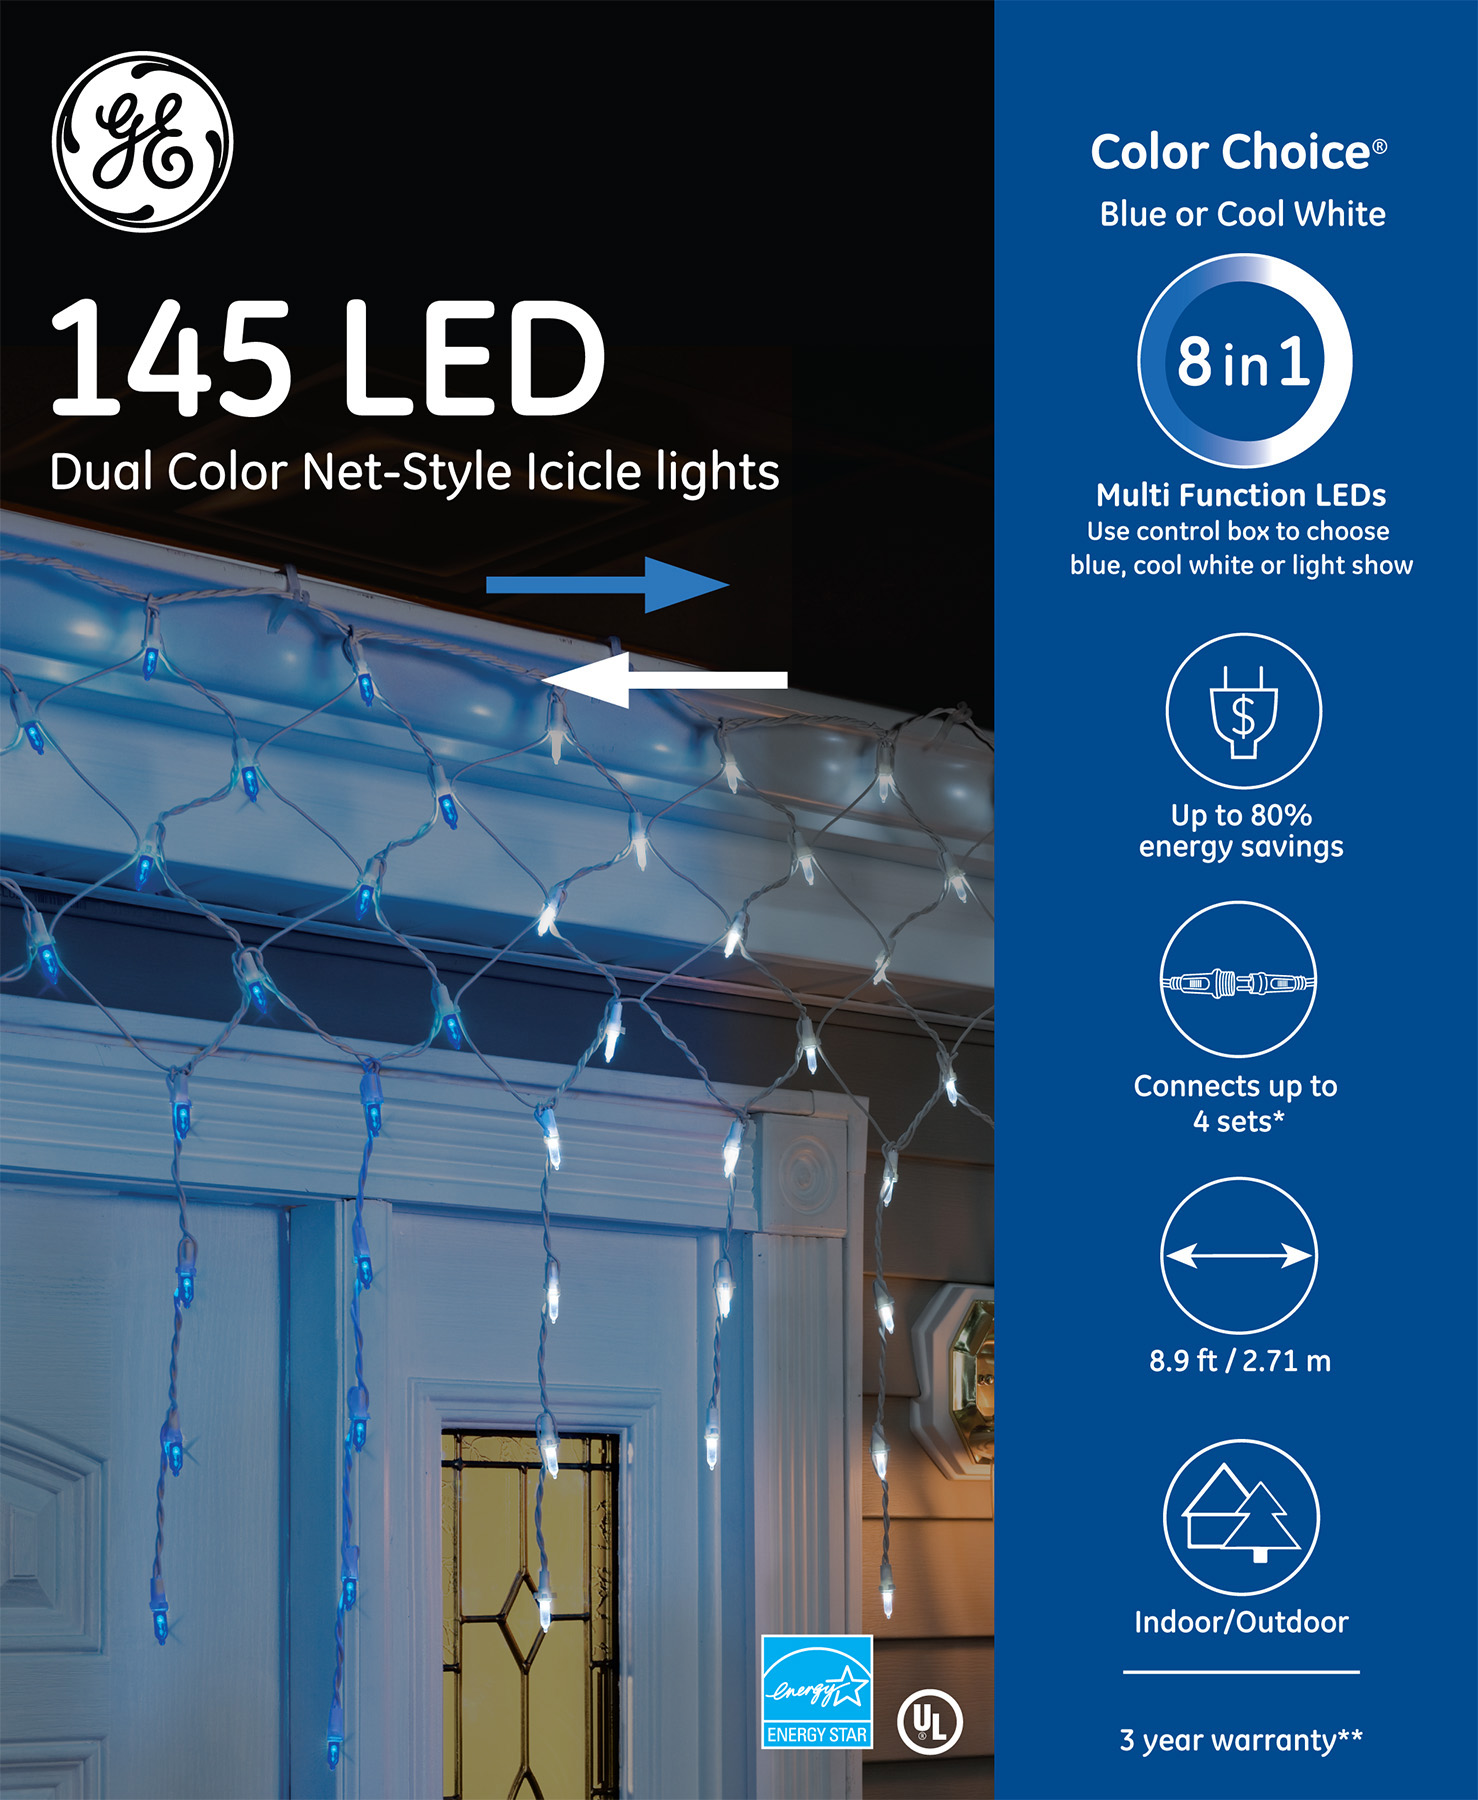 89130 Ge Color Choice Led Net Style Icicle Lights 145ct Blue Cool White